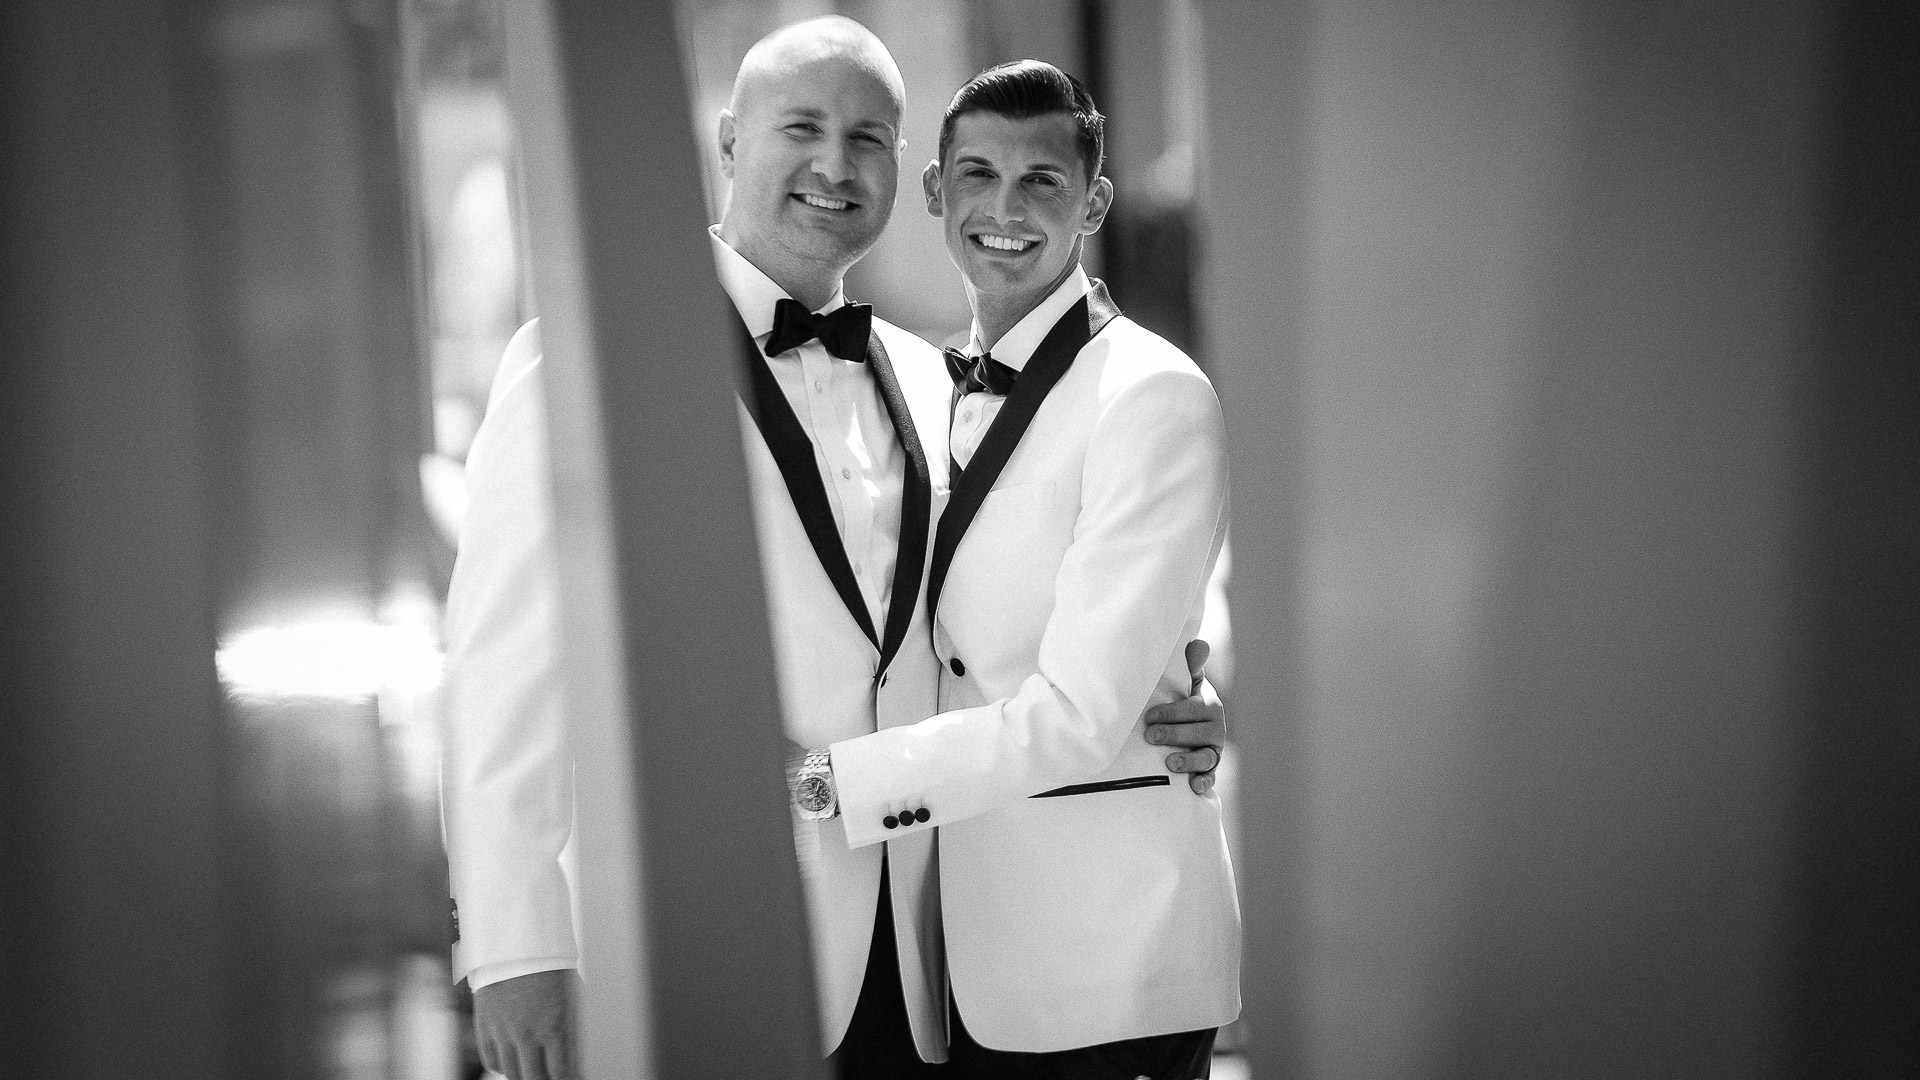 Gay wedding portrait at the Ritz Carlton 42 restaurant in White Plains NY